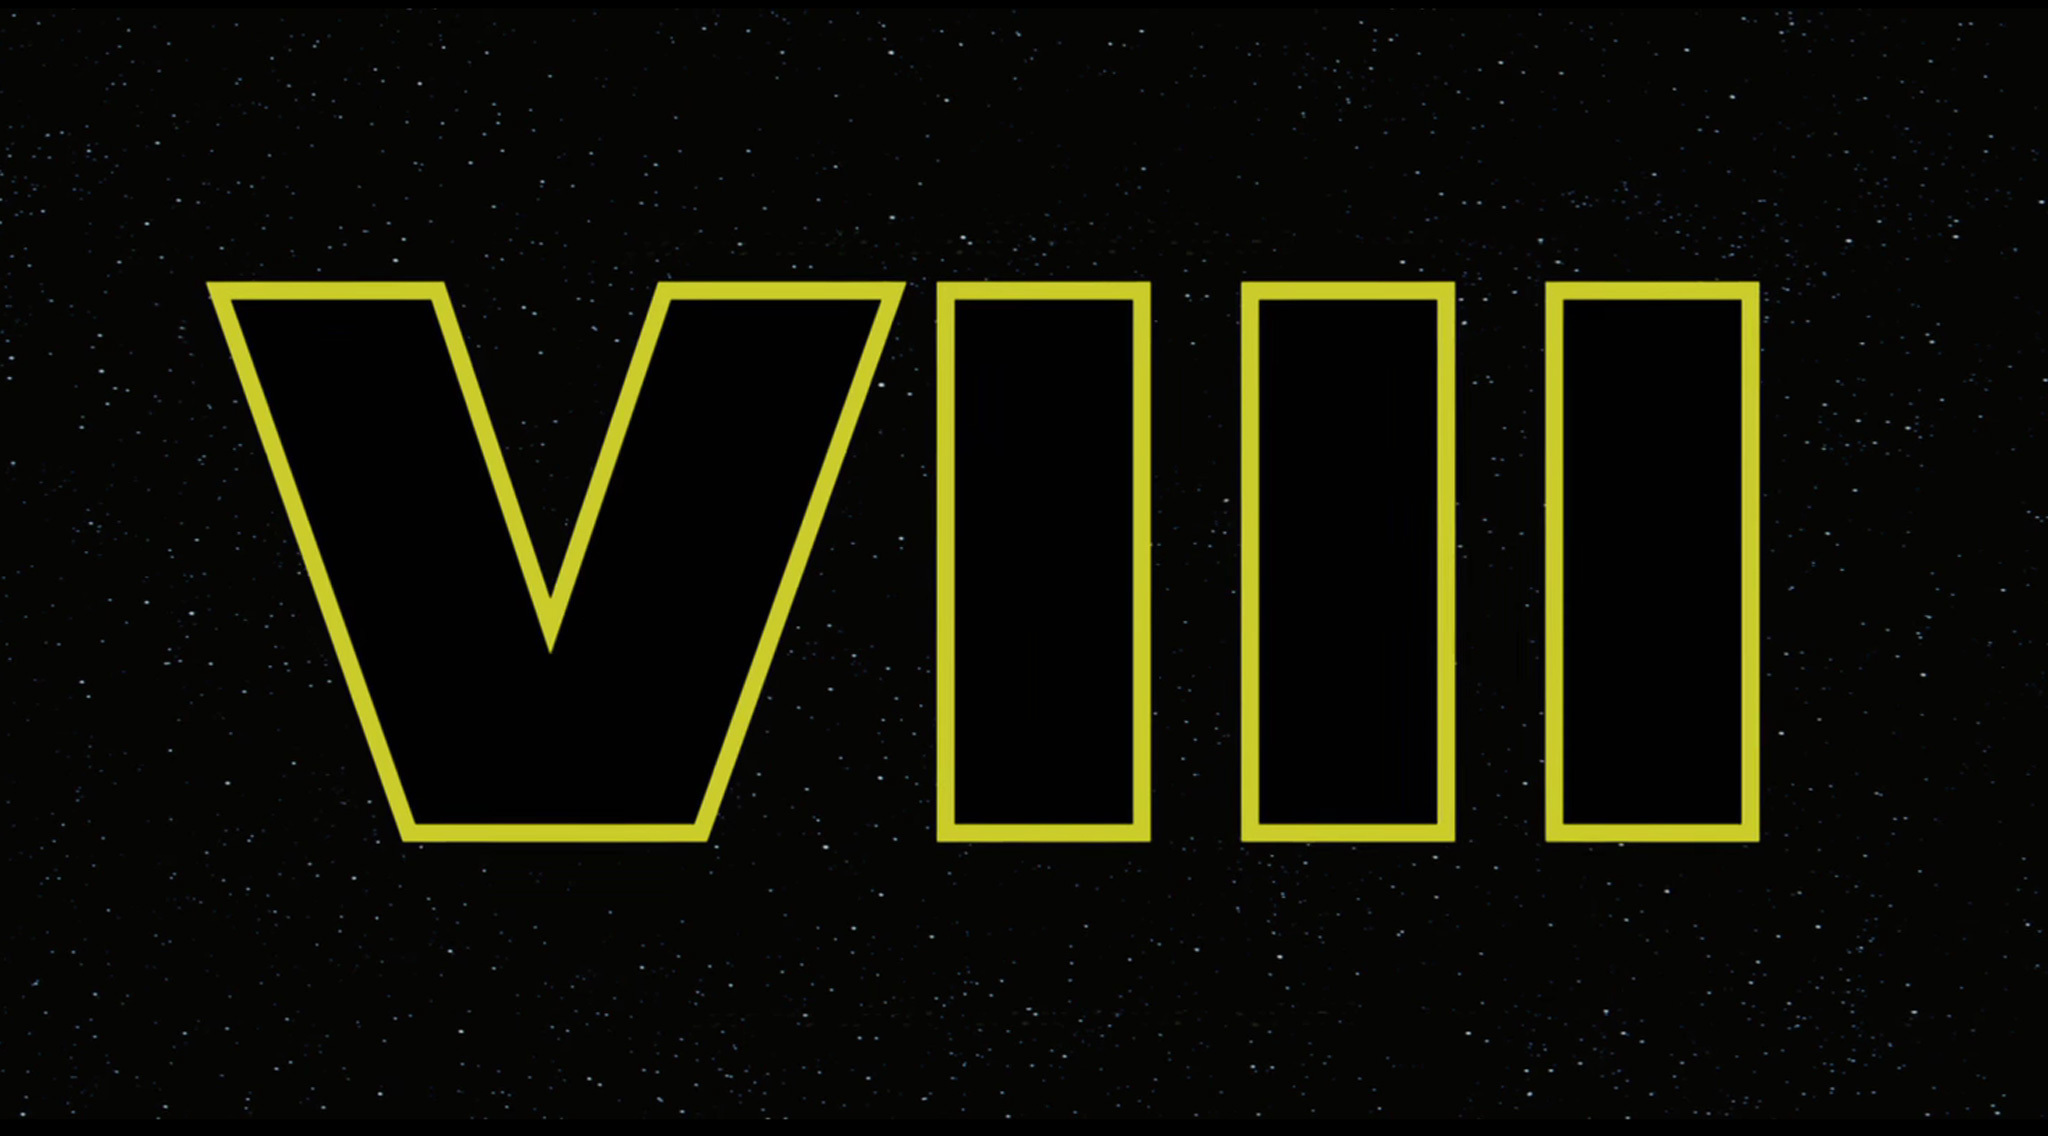 Star Wars: Episode VIII